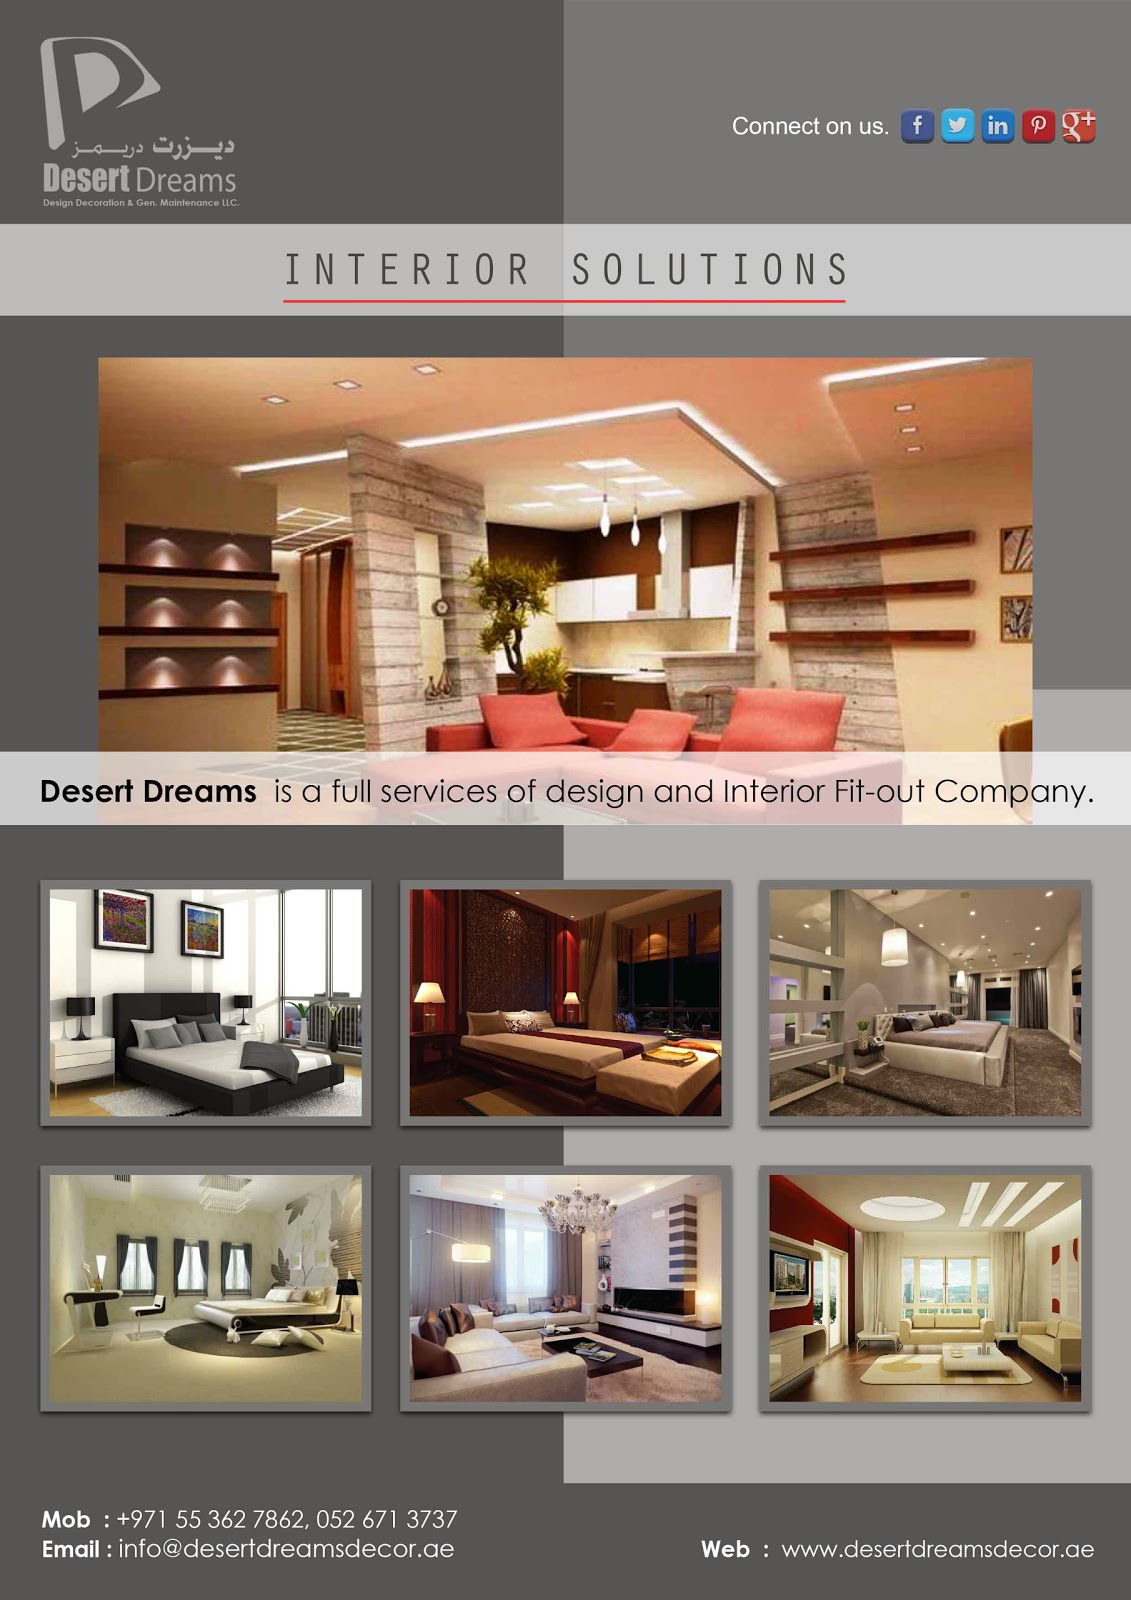 Desert Dreams Is A Full Services Of Design And Interior Fitout - Home interior design company